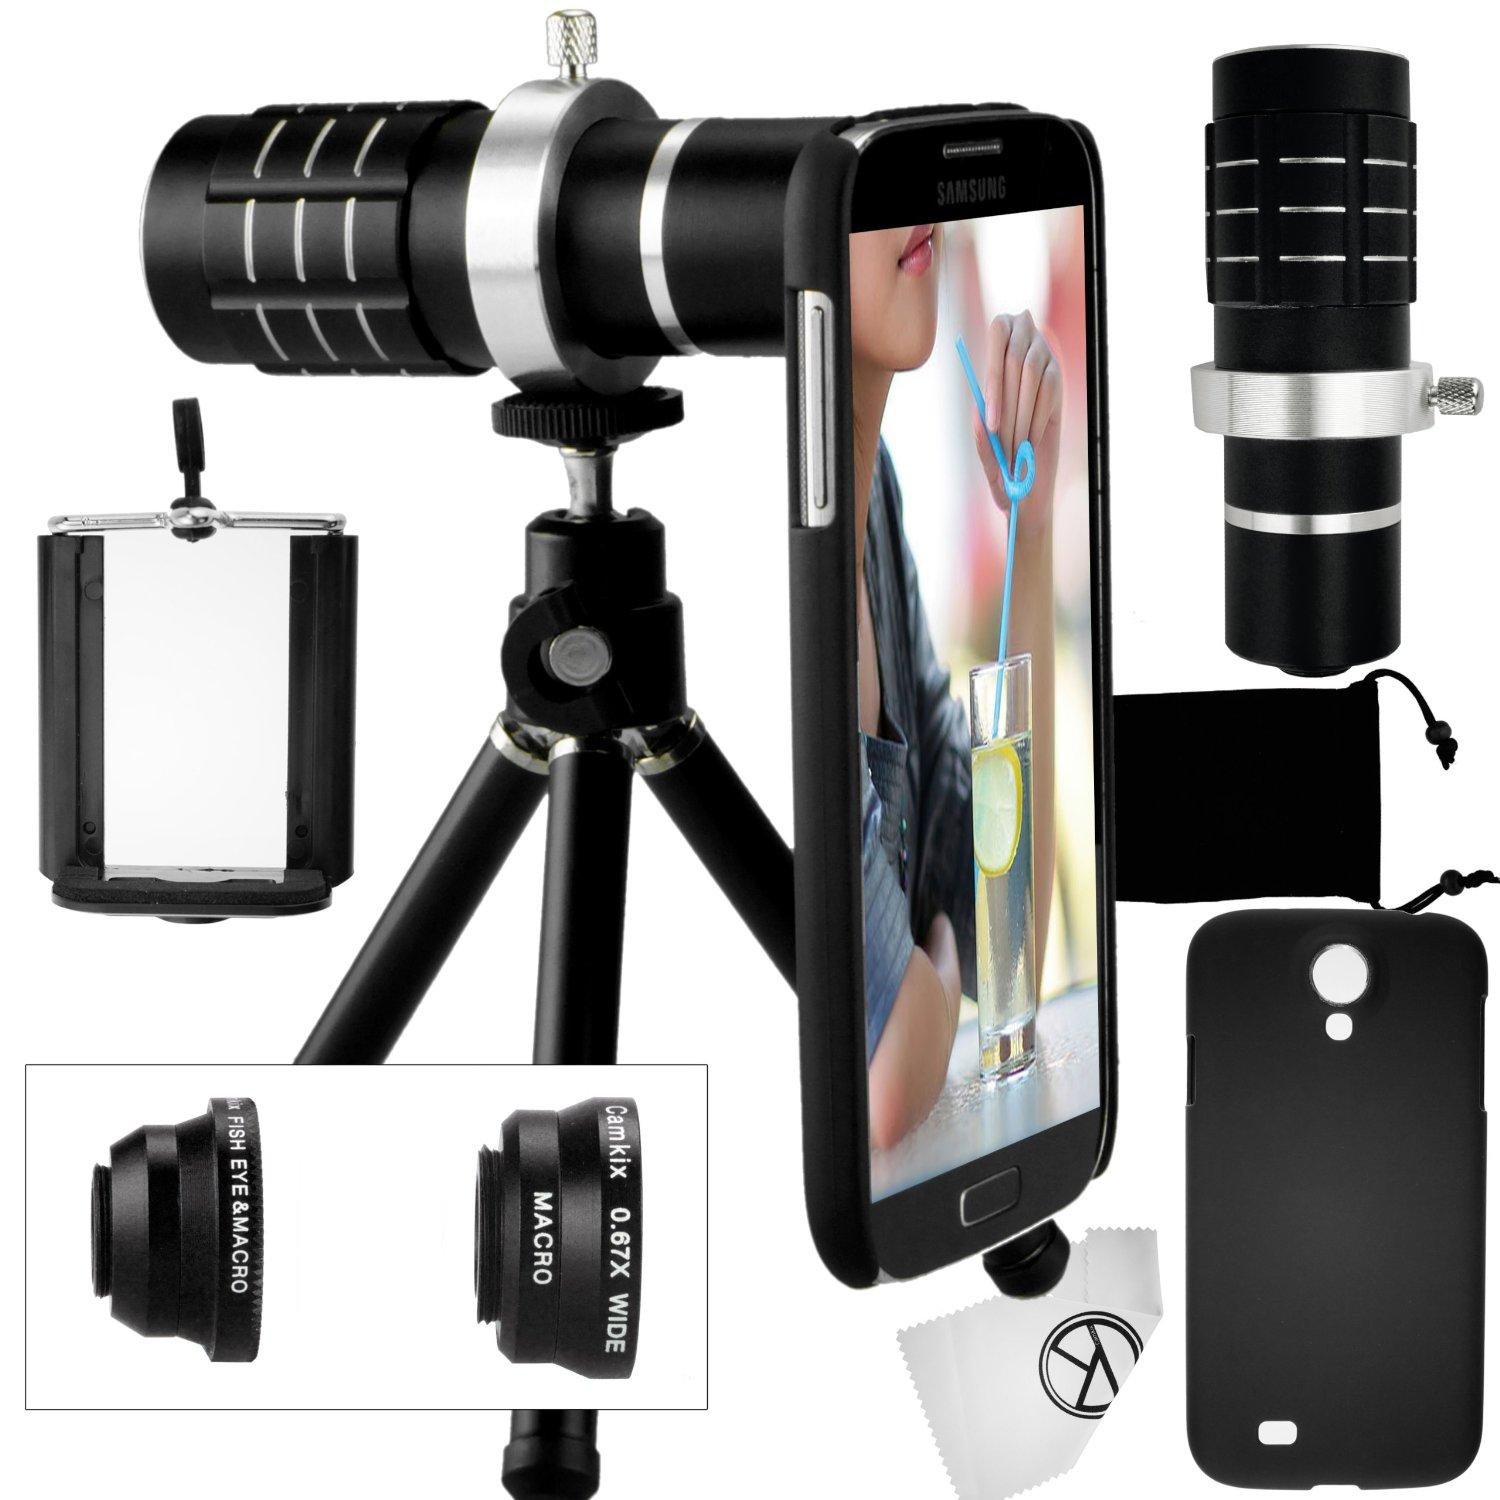 Amazon.com: Camkix Samsung Galaxy S4 Camera Lens Kit including a 12x